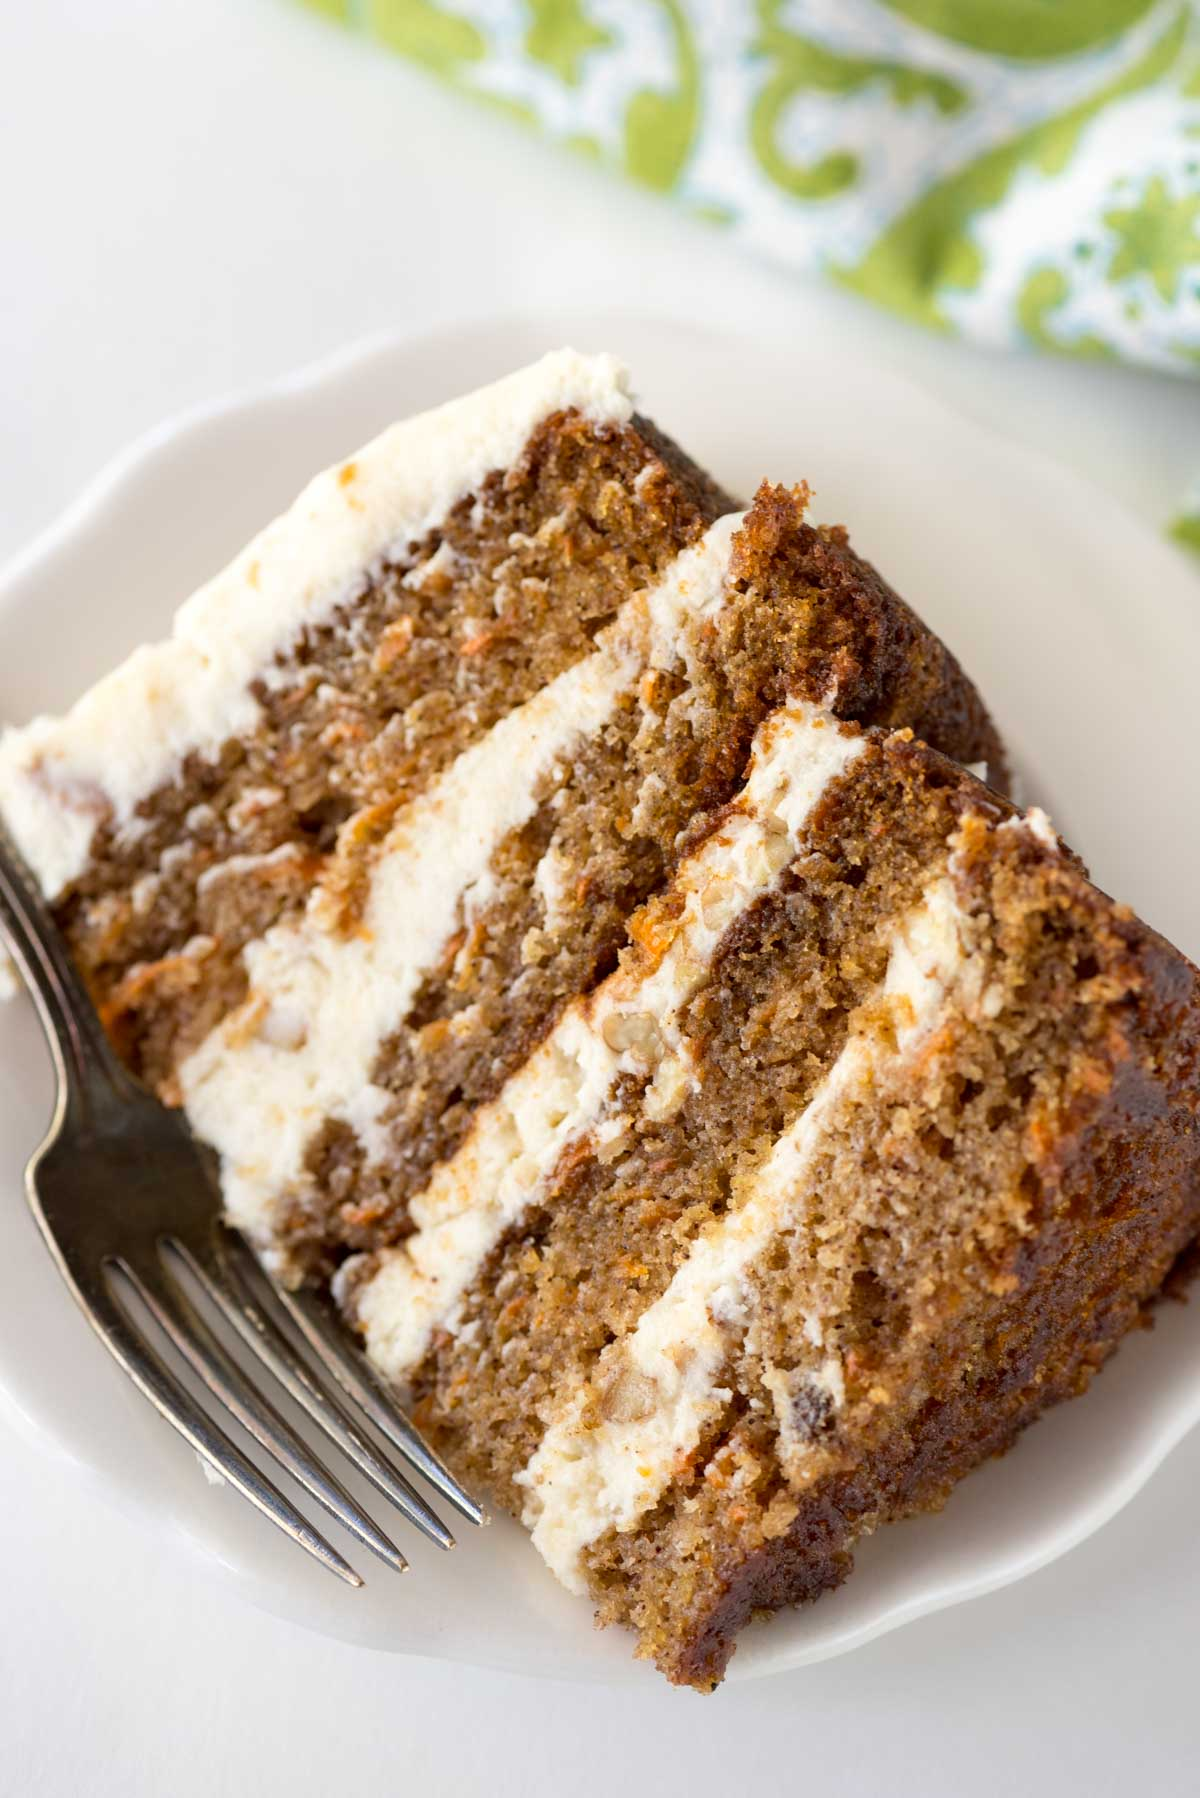 Naked Carrot Cake with Cream Cheese Frosting ⋆ Growing Up Cali